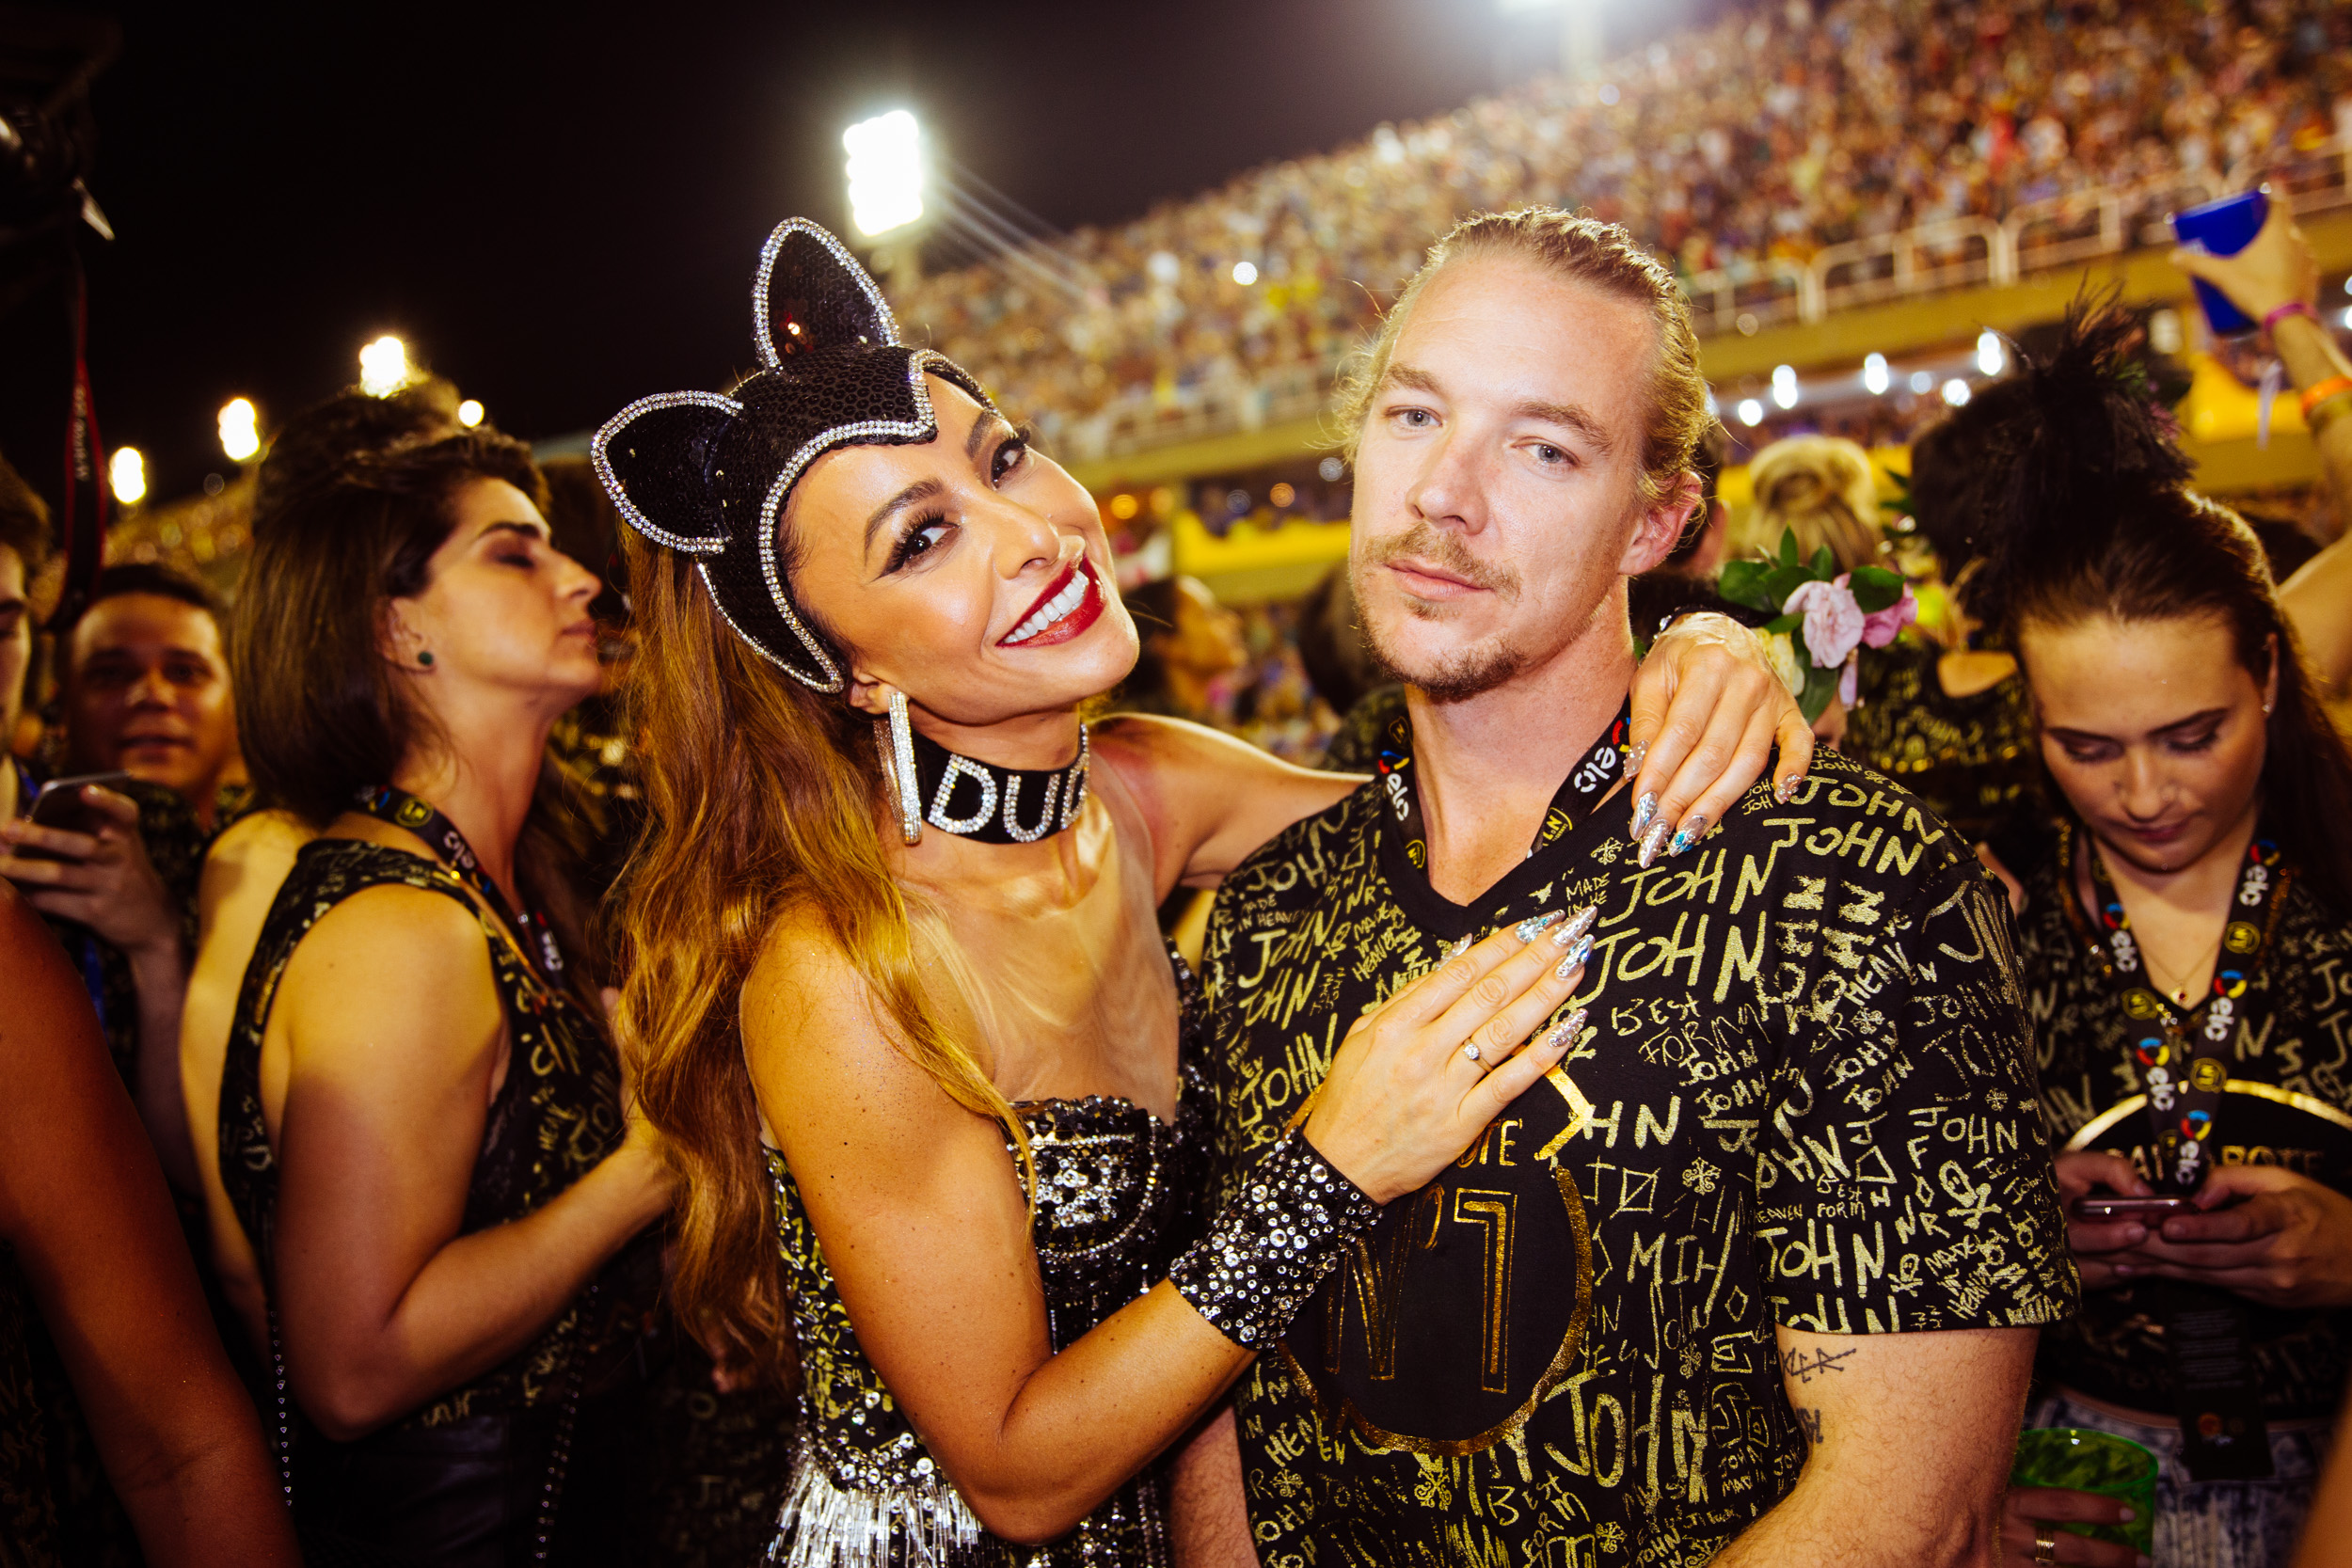 Diplo with an actress